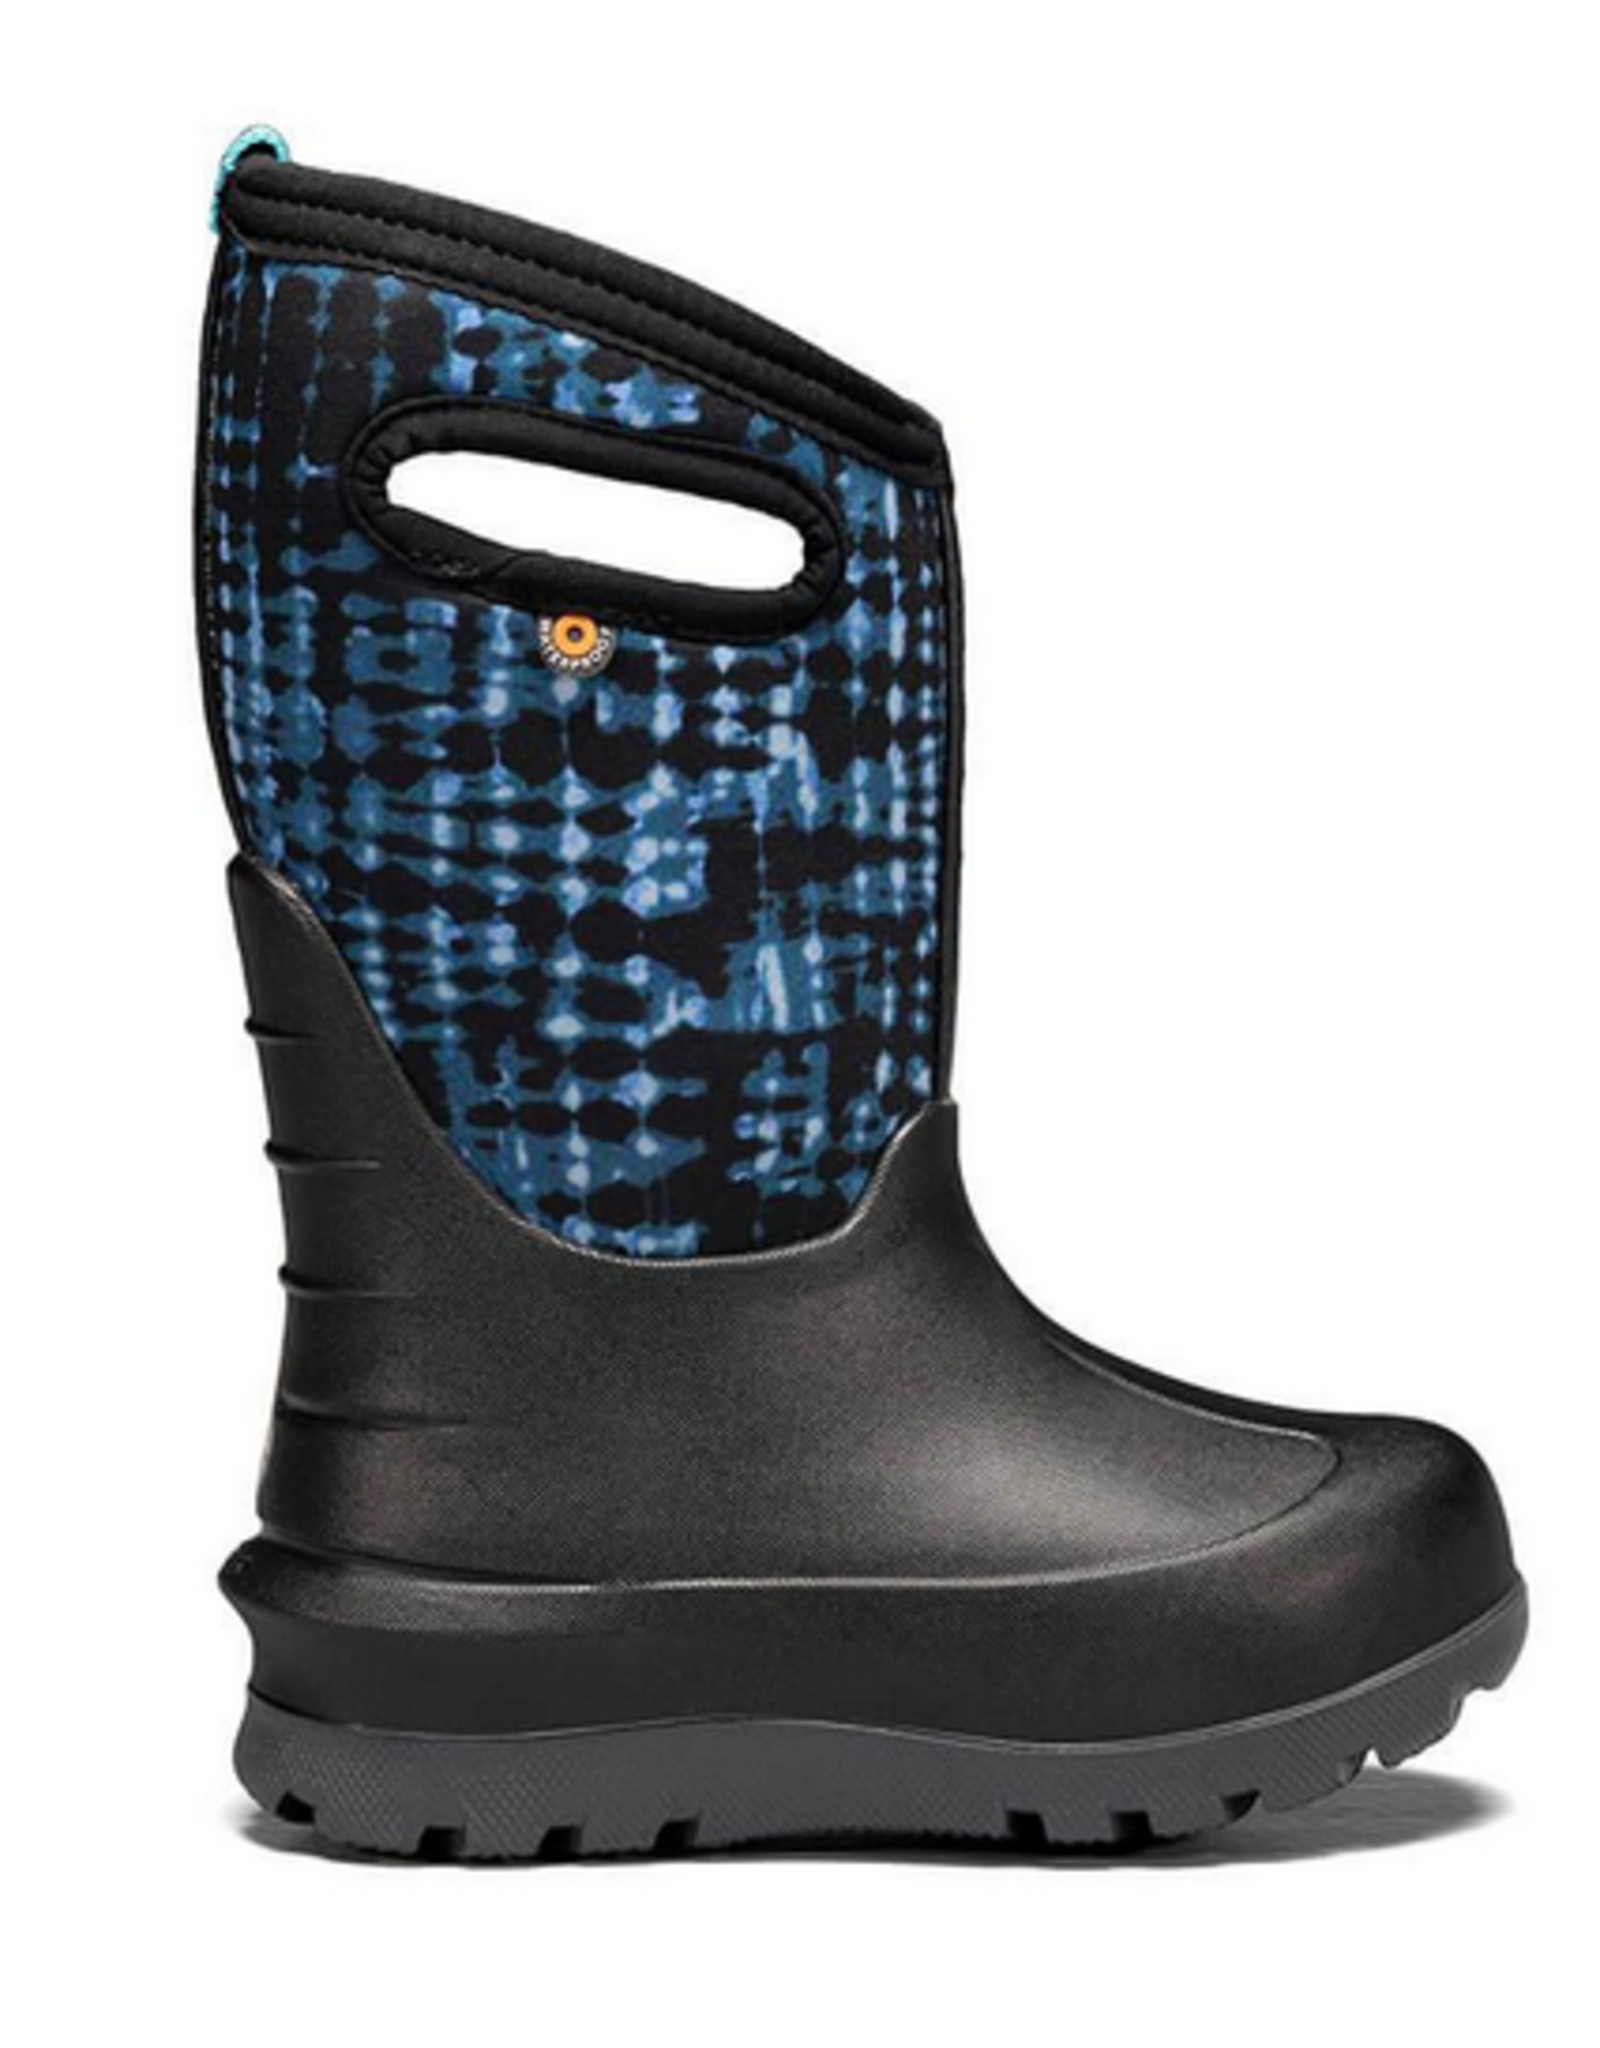 Bogs Kid's NeoClassic Boots